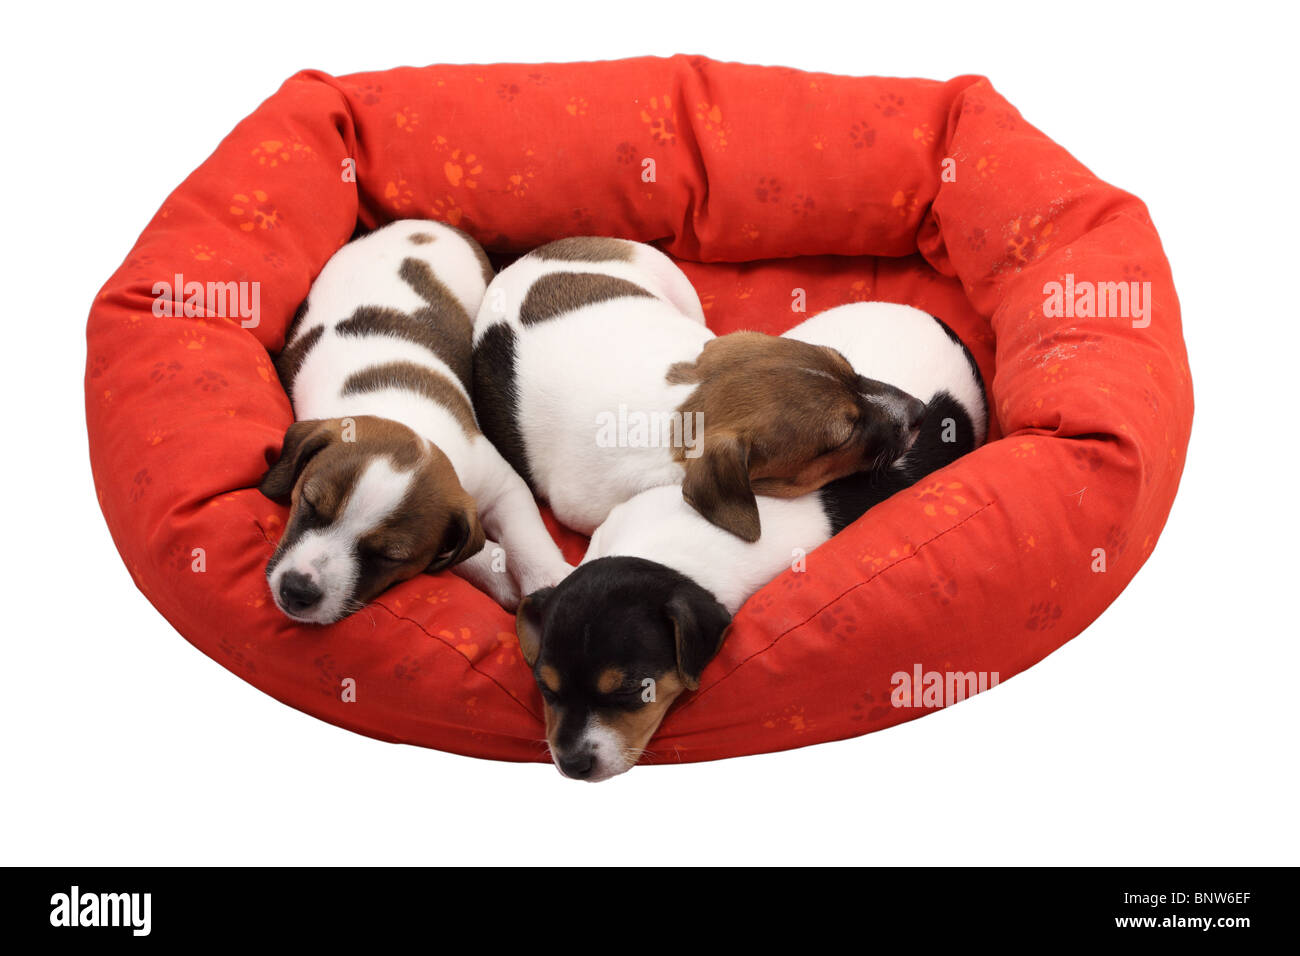 Jack Russel Terrier puppies sleeping in their cot. Isolated over white background - Stock Image